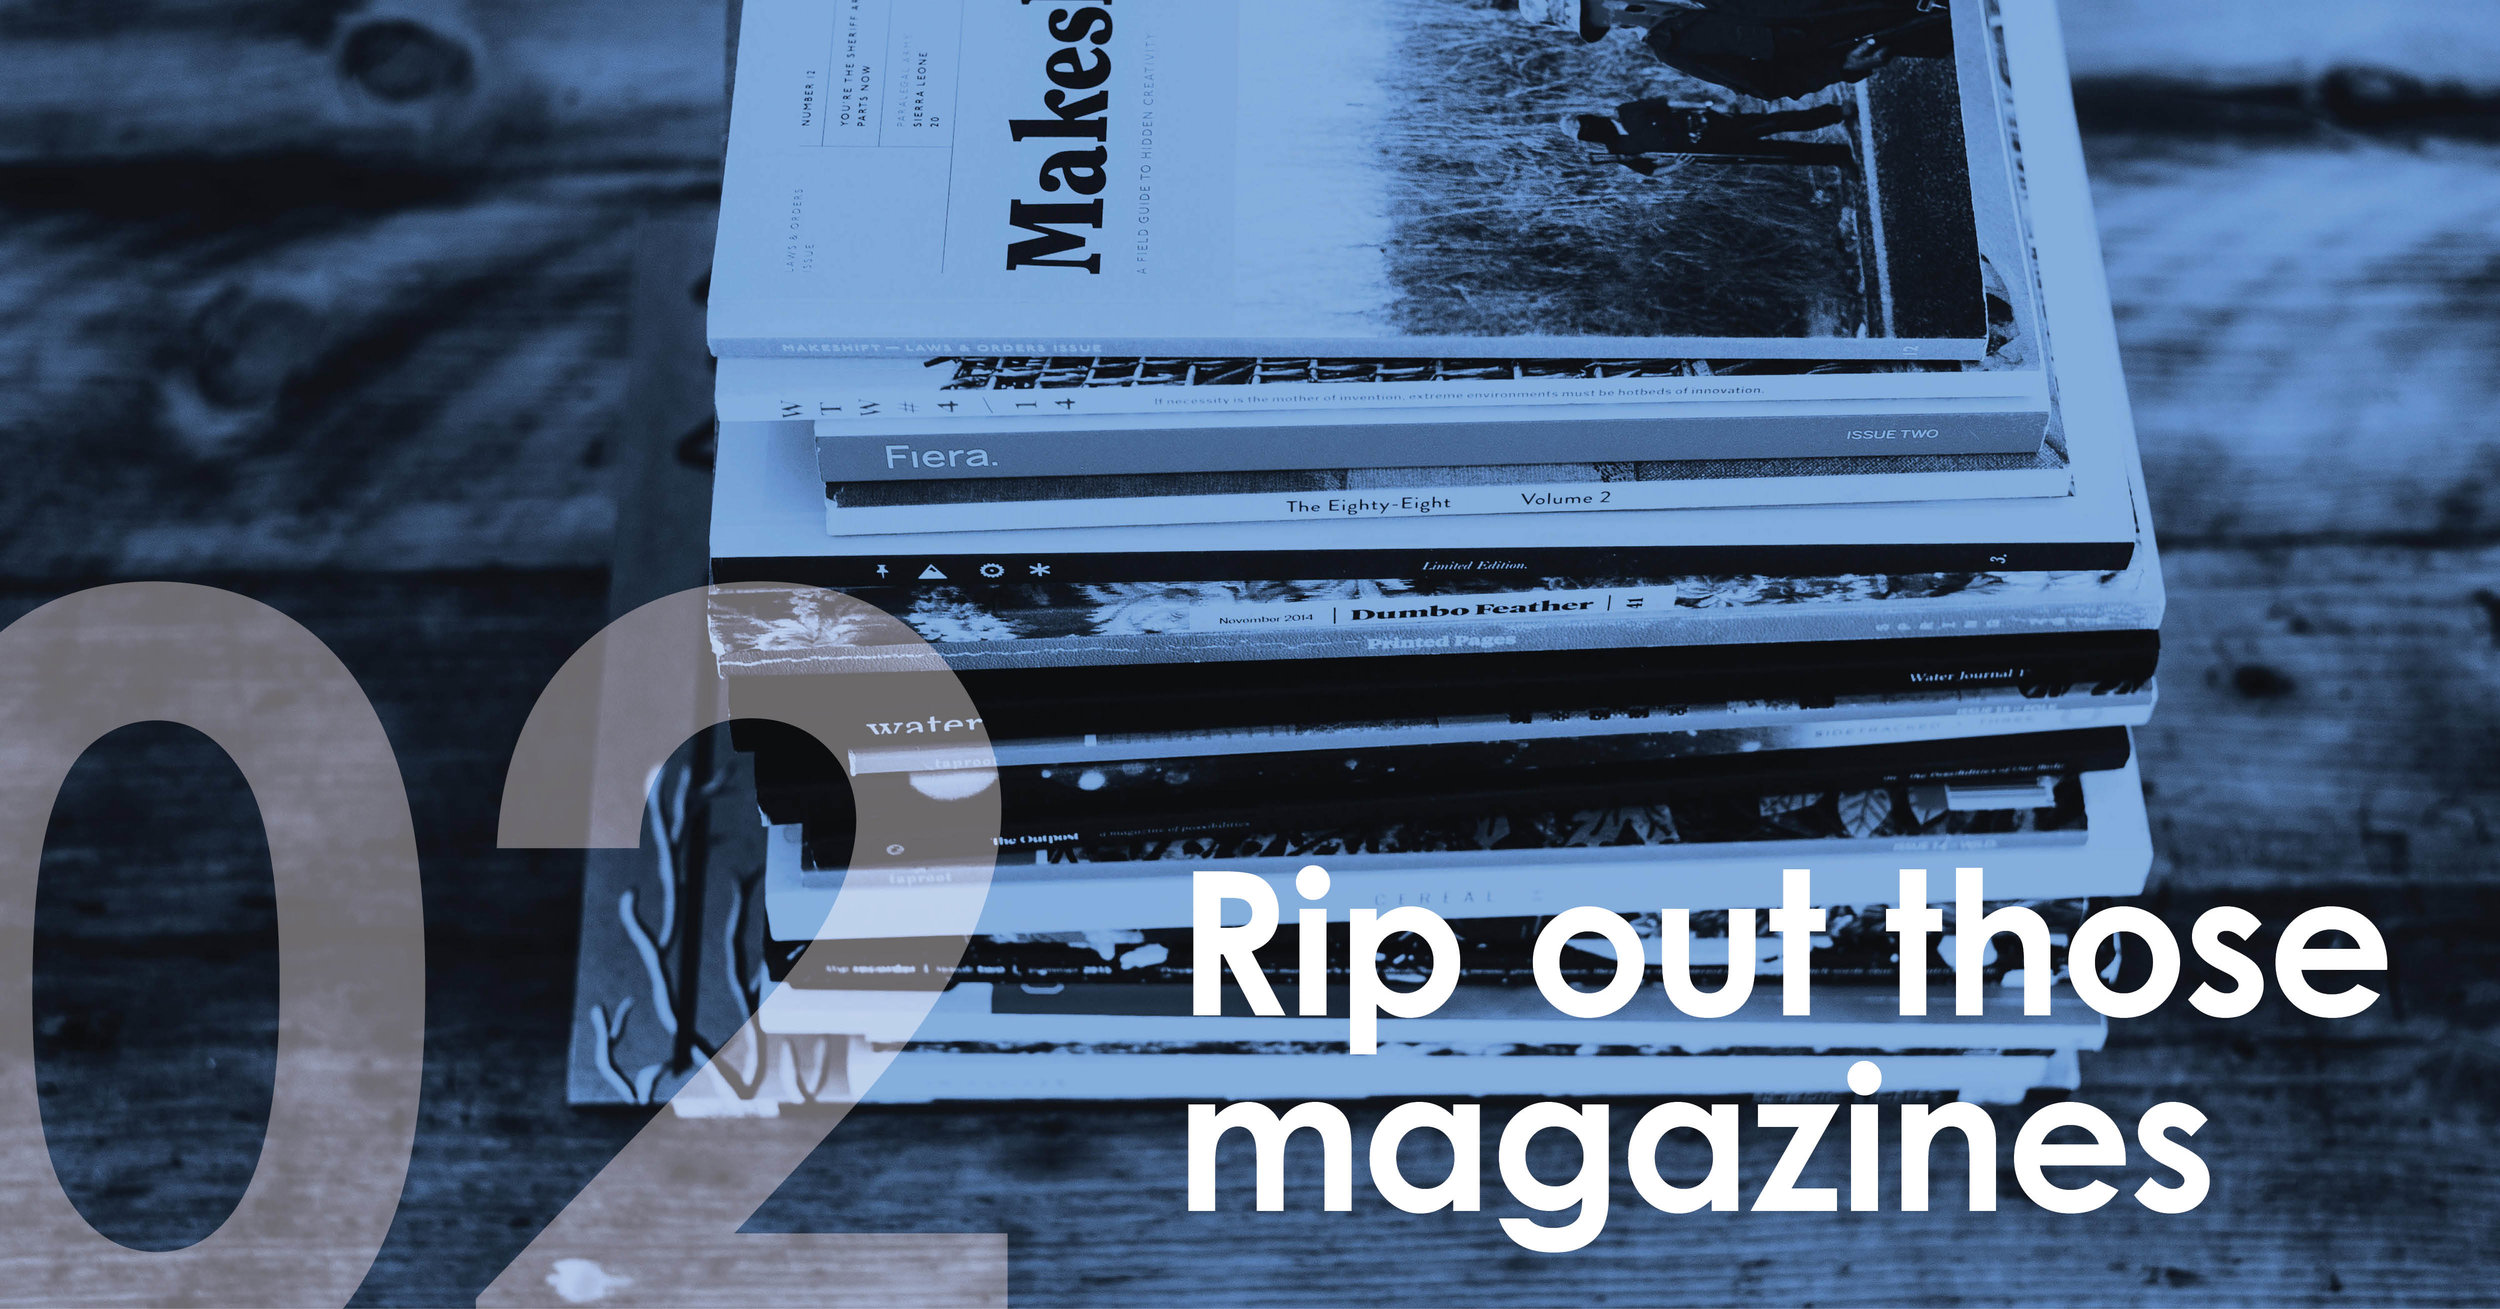 02. Rip out those magazines